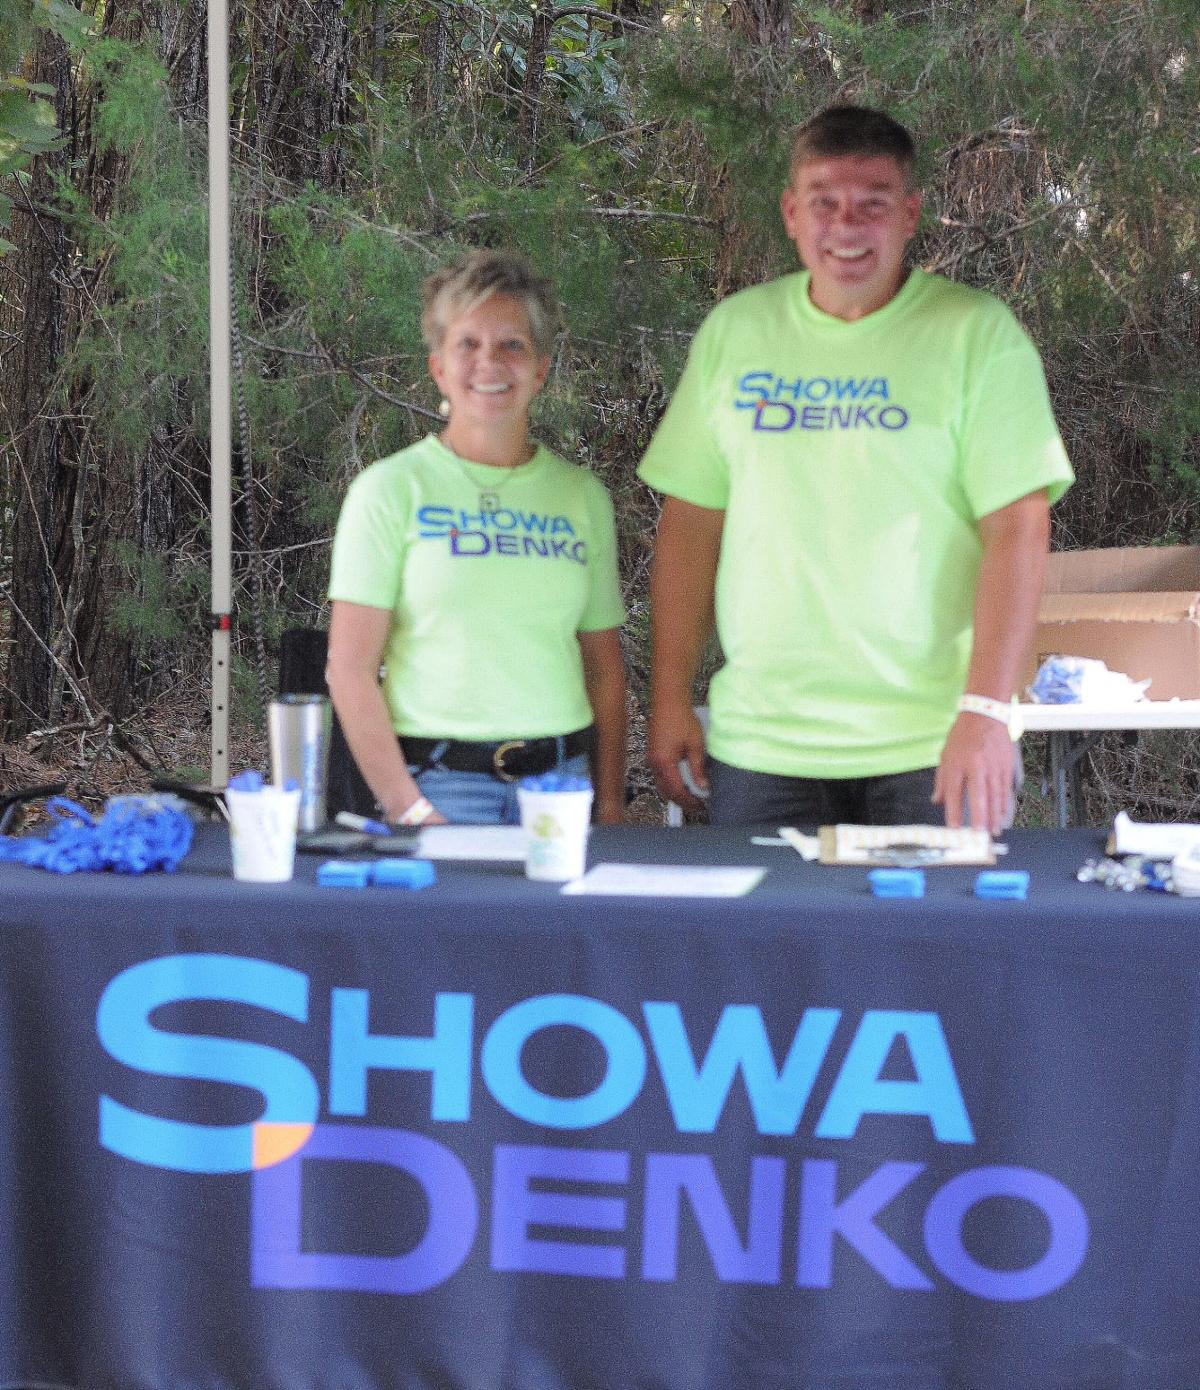 Debra and Derrill Austin of Showa Denko Carbon, Inc. welcome people to the Edisto Blackwater Boogie festival. By Roger Lee